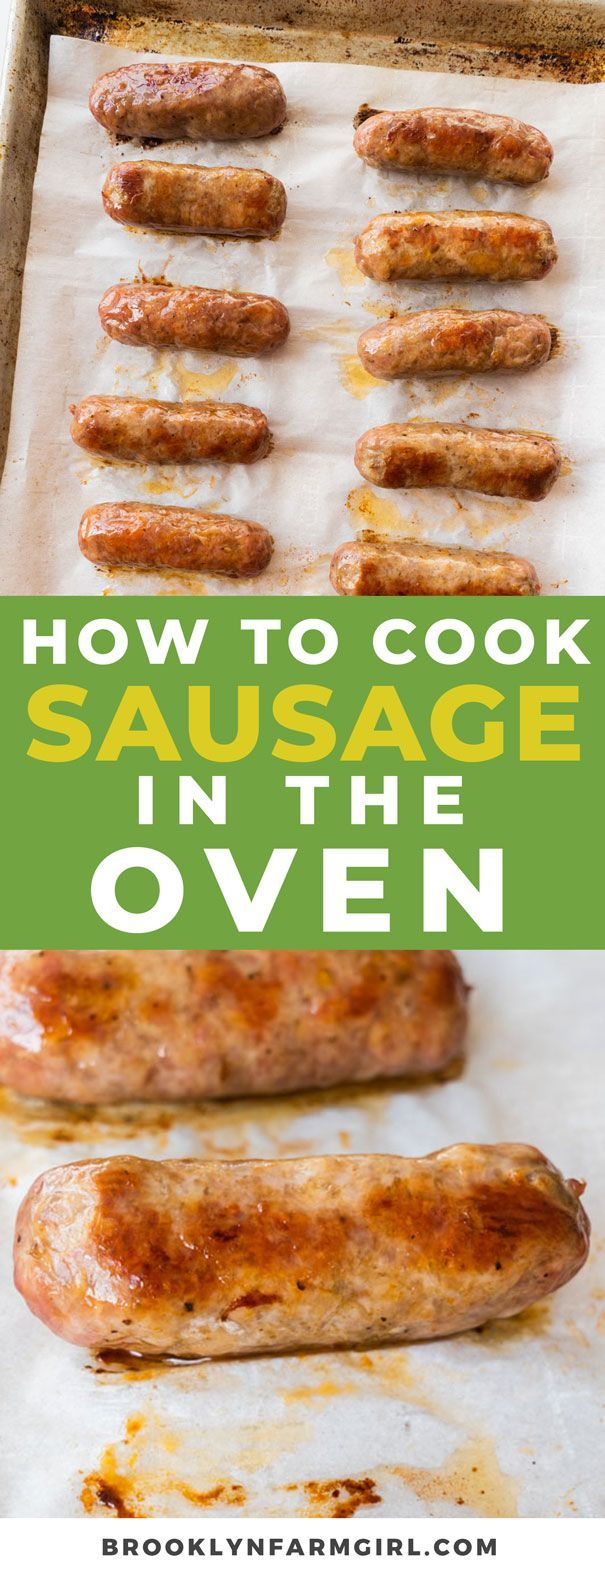 How to Cook Sausage in the Oven #sausagedinner